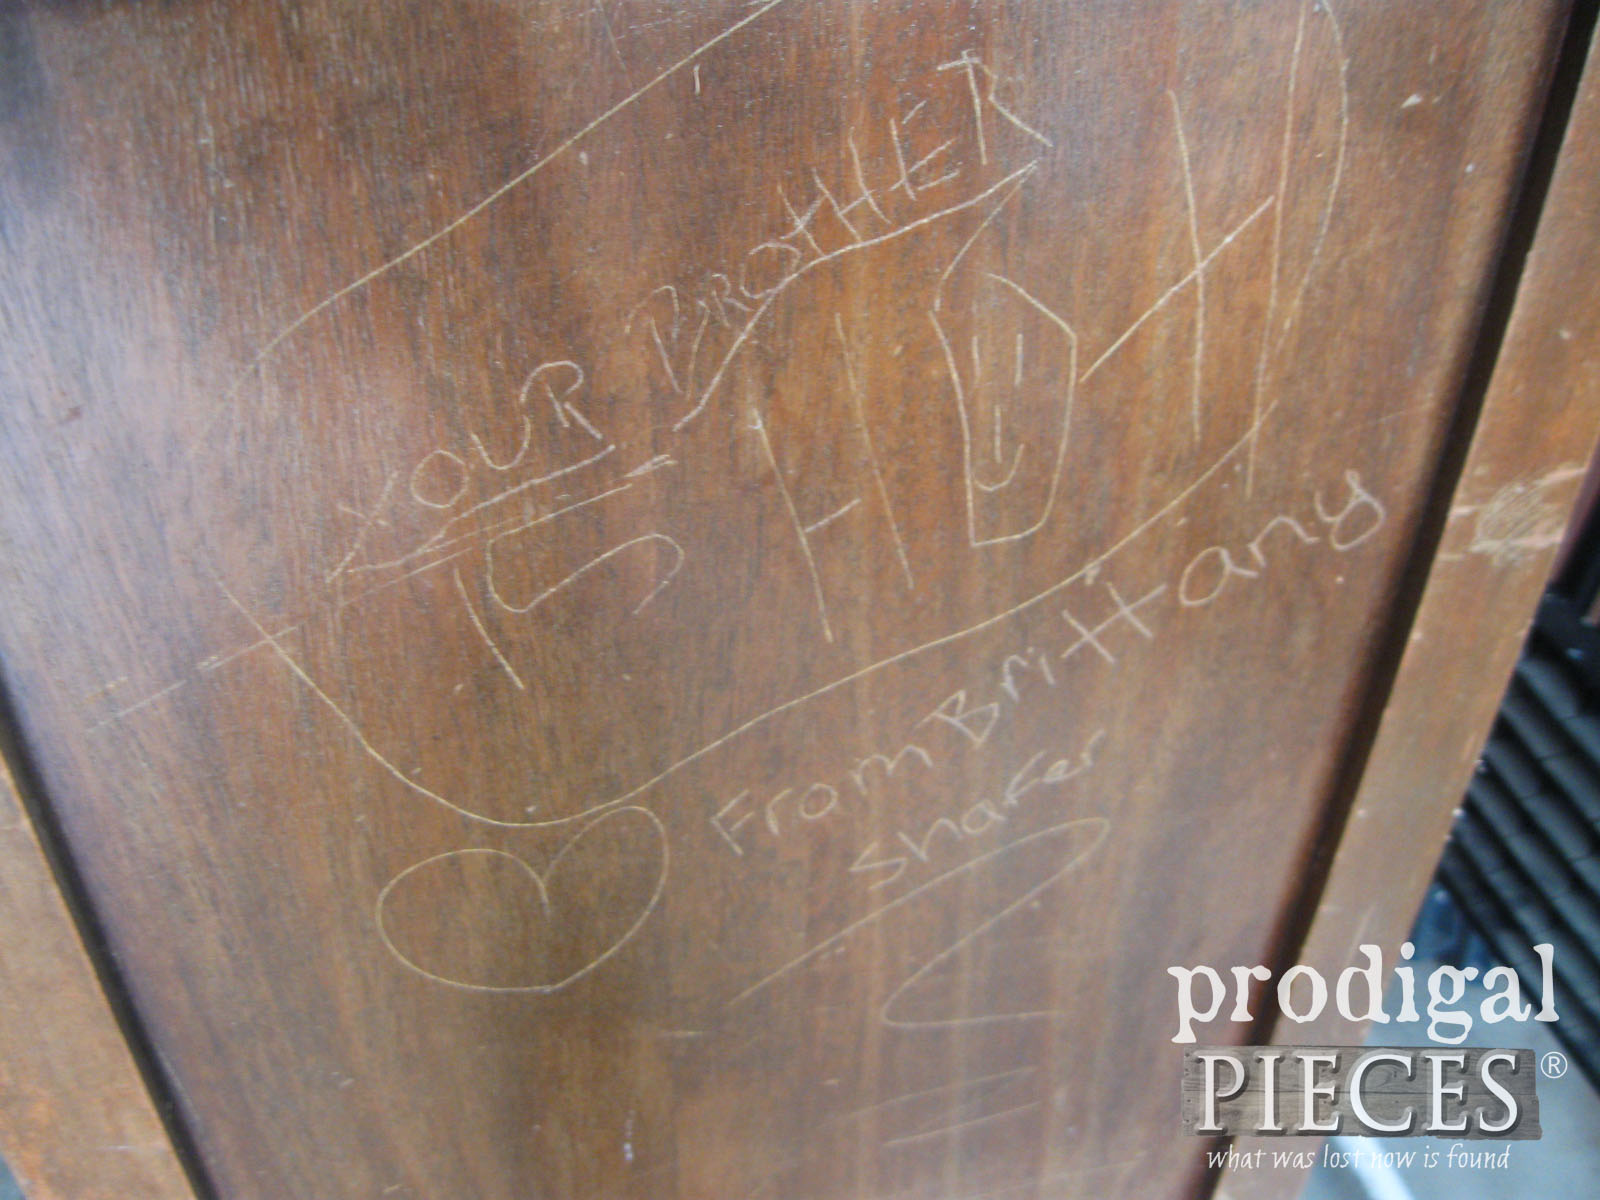 Carved Messages on Vintage Buffet | Prodigal Pieces | www.prodigalpieces.com